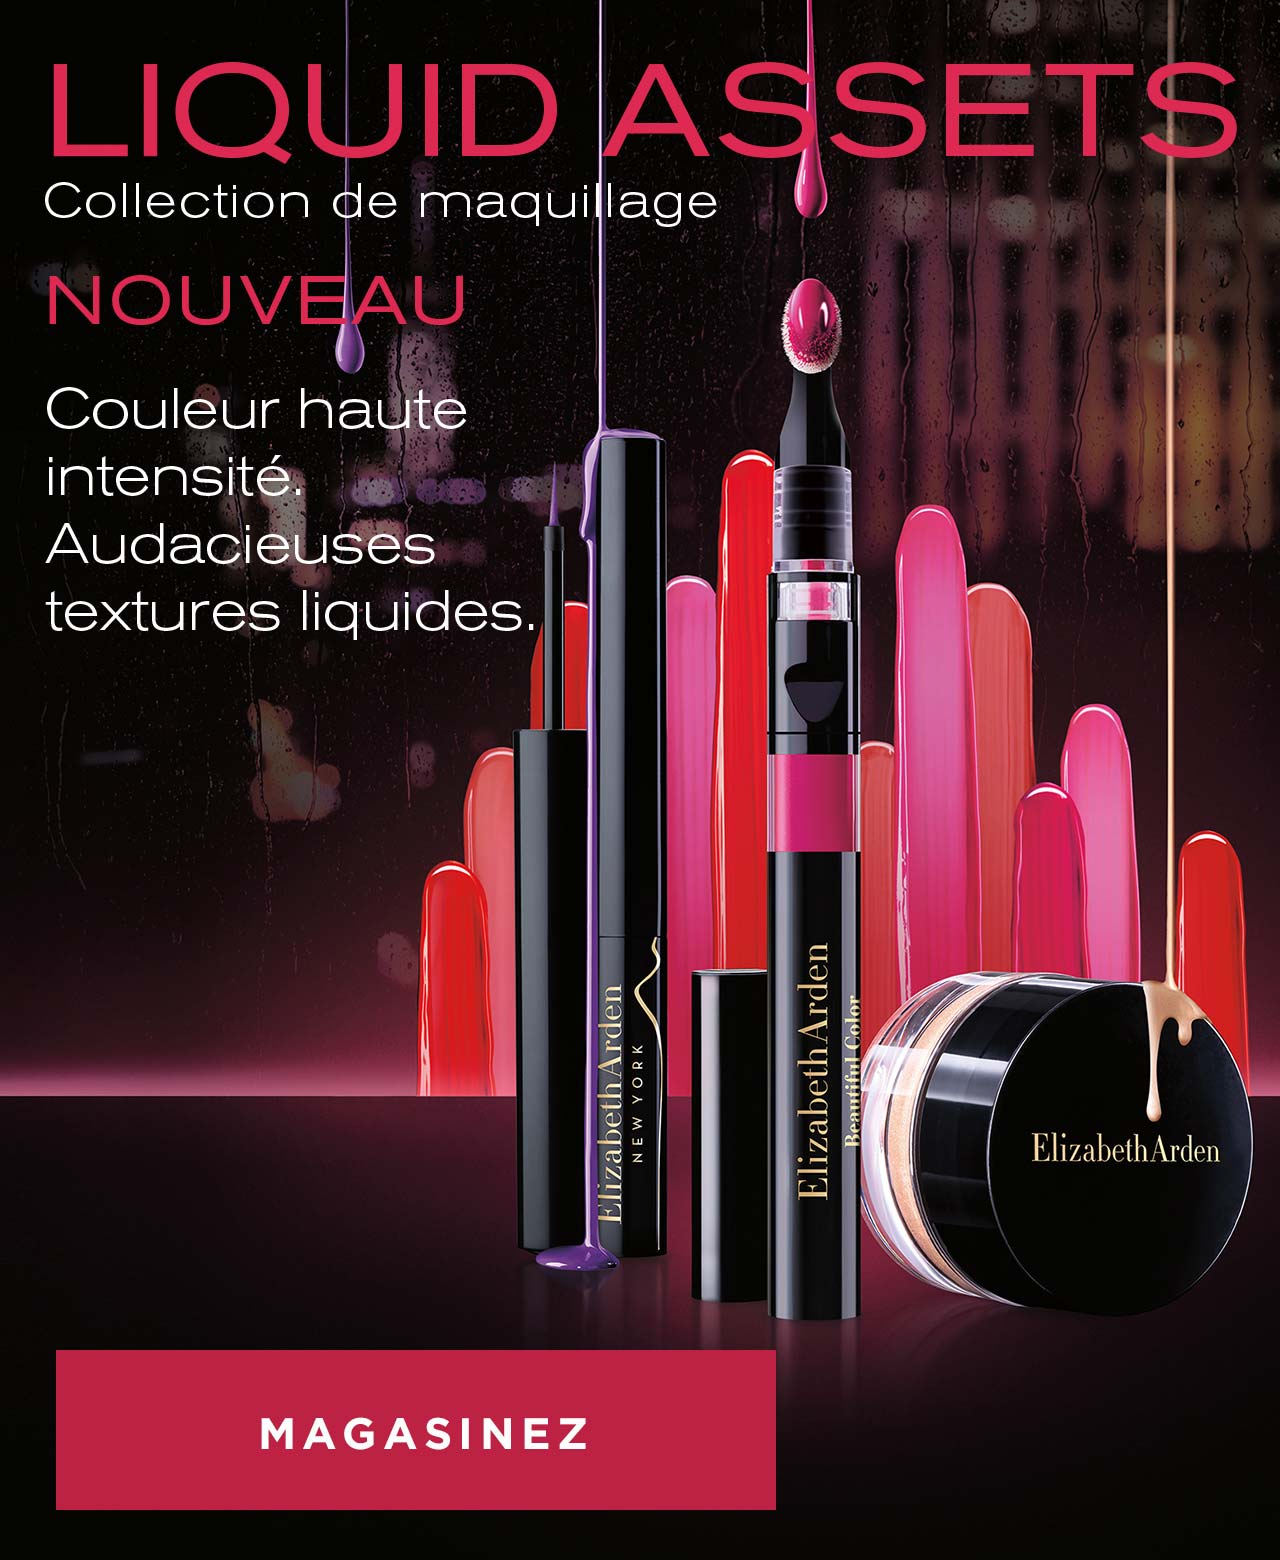 Liquid Assets Collection de maquillage